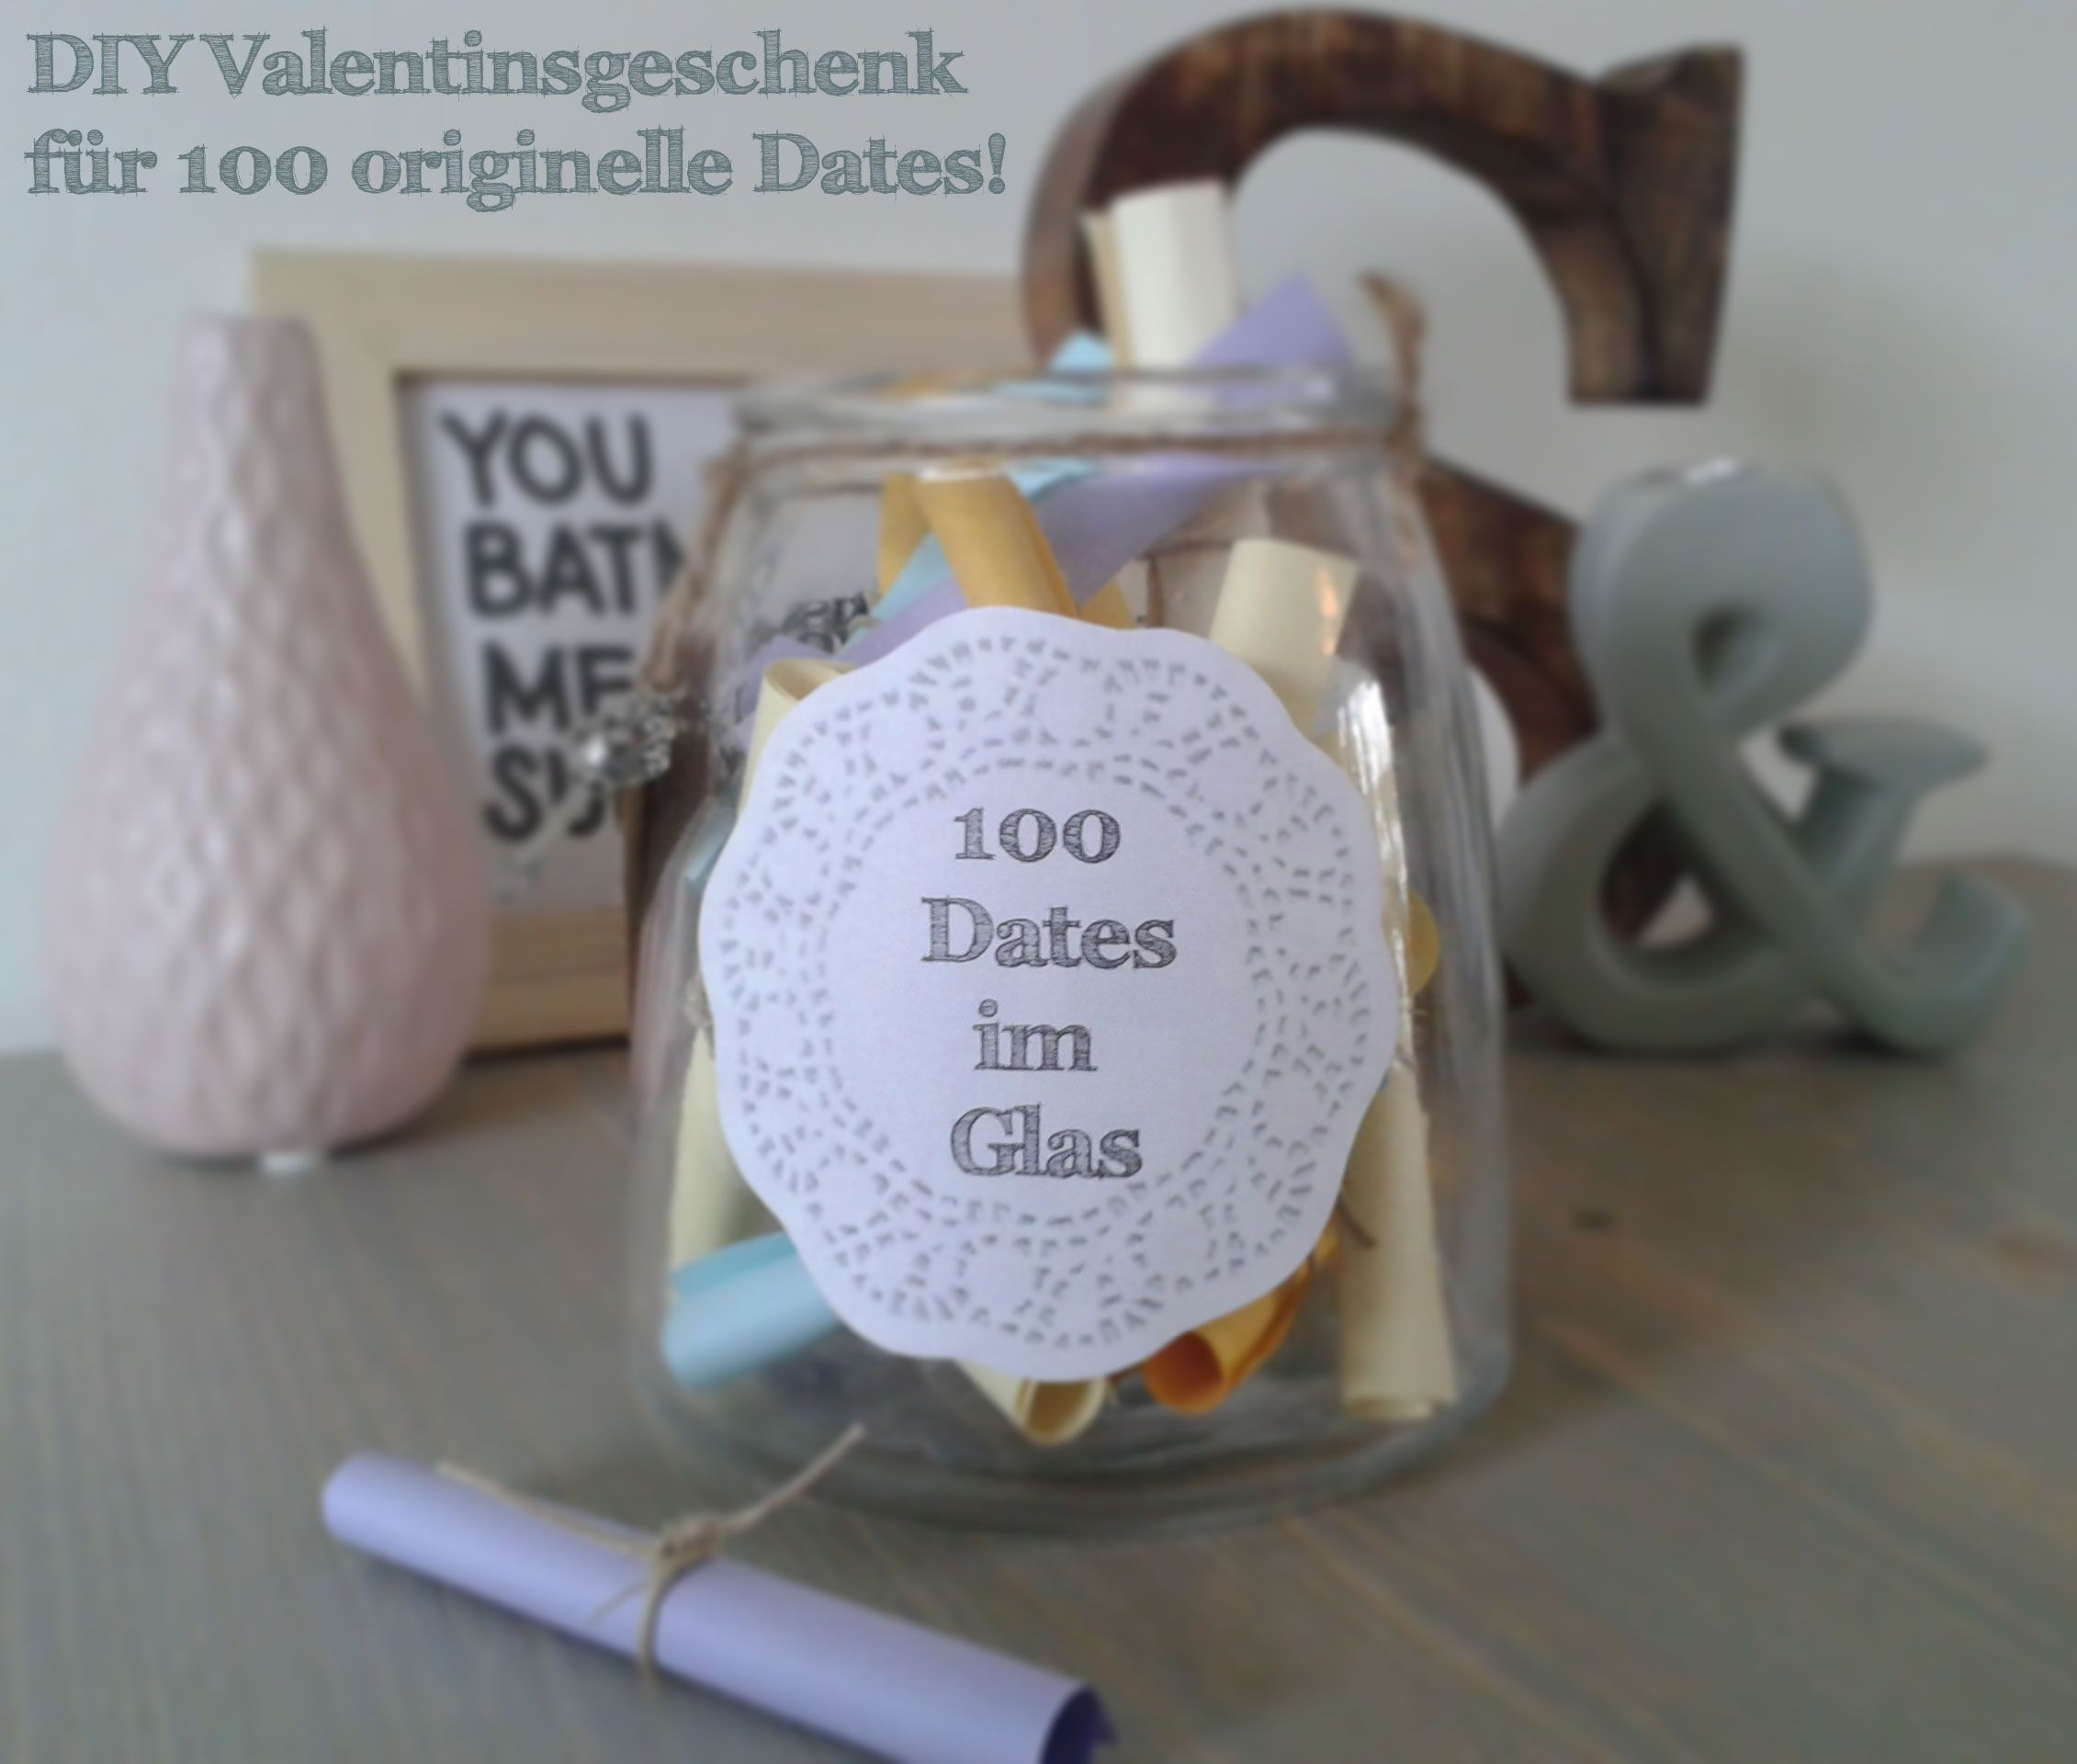 valentinstag mit diy geschenk 100 dates im glas alles was du brauchst ist ein dekoratives glas. Black Bedroom Furniture Sets. Home Design Ideas